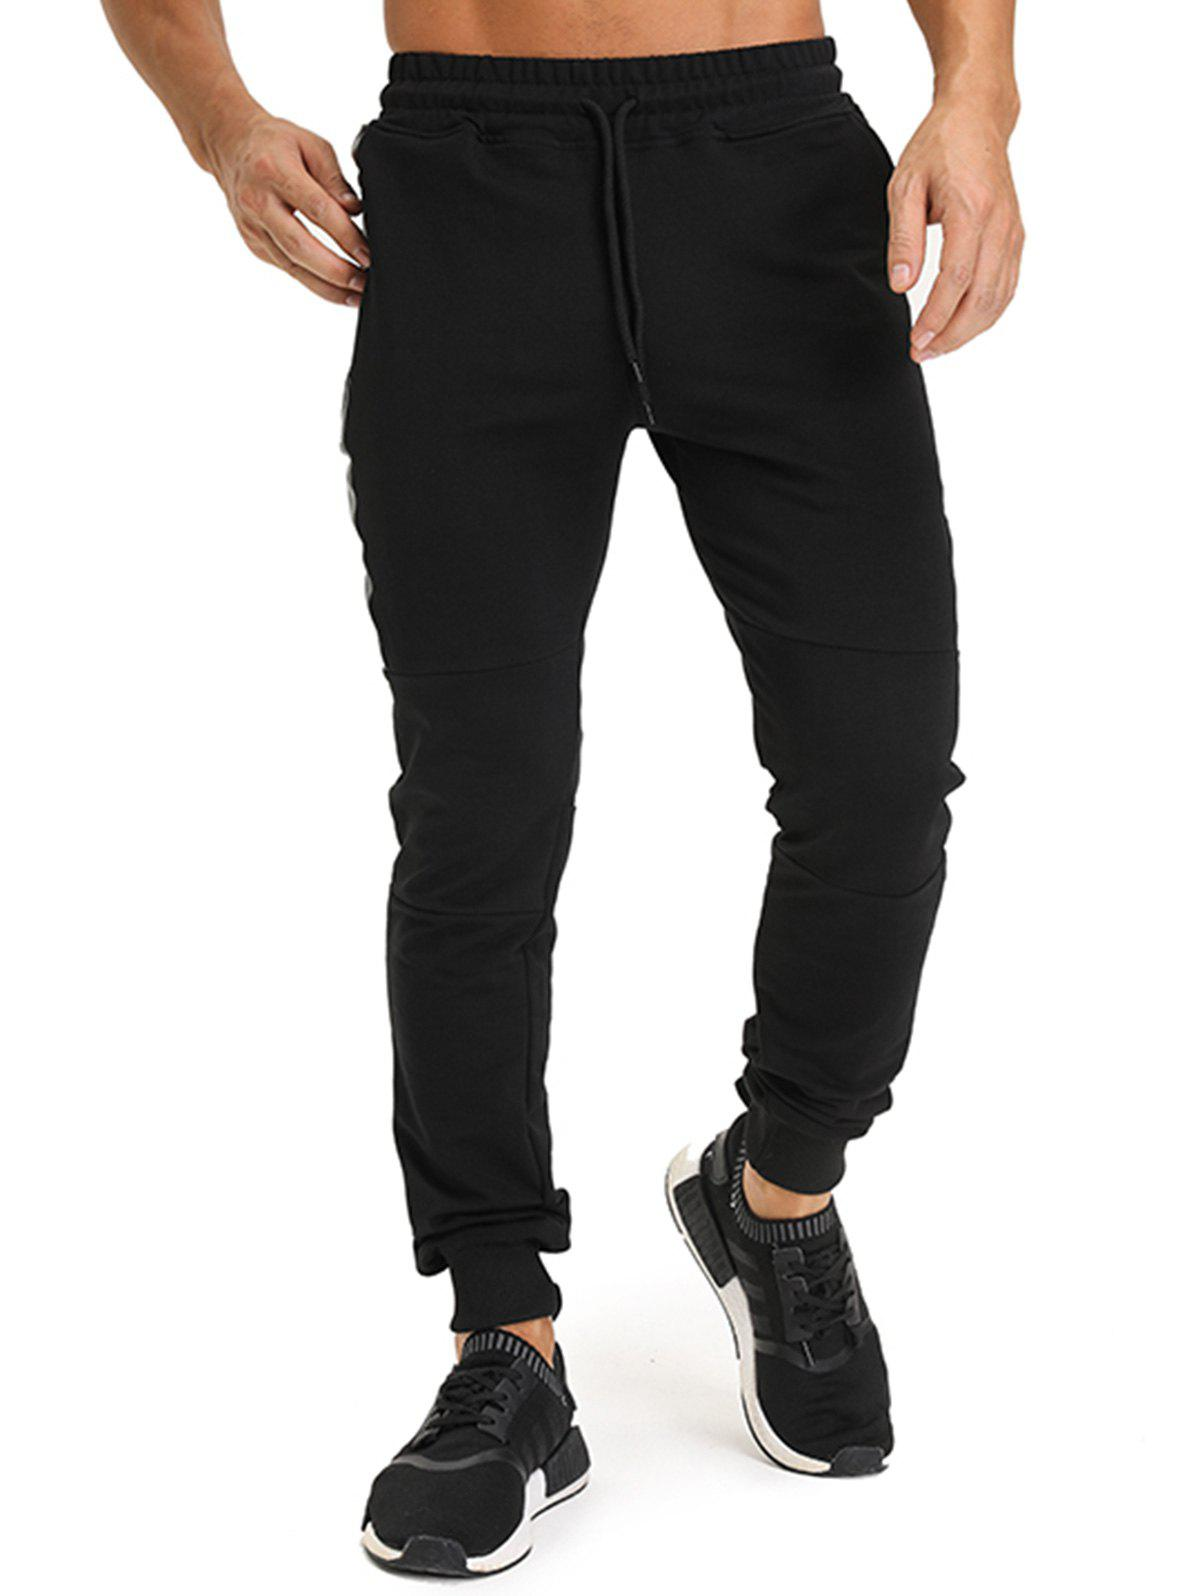 New PU Leather Edging Zip Pockets Jogger Pants